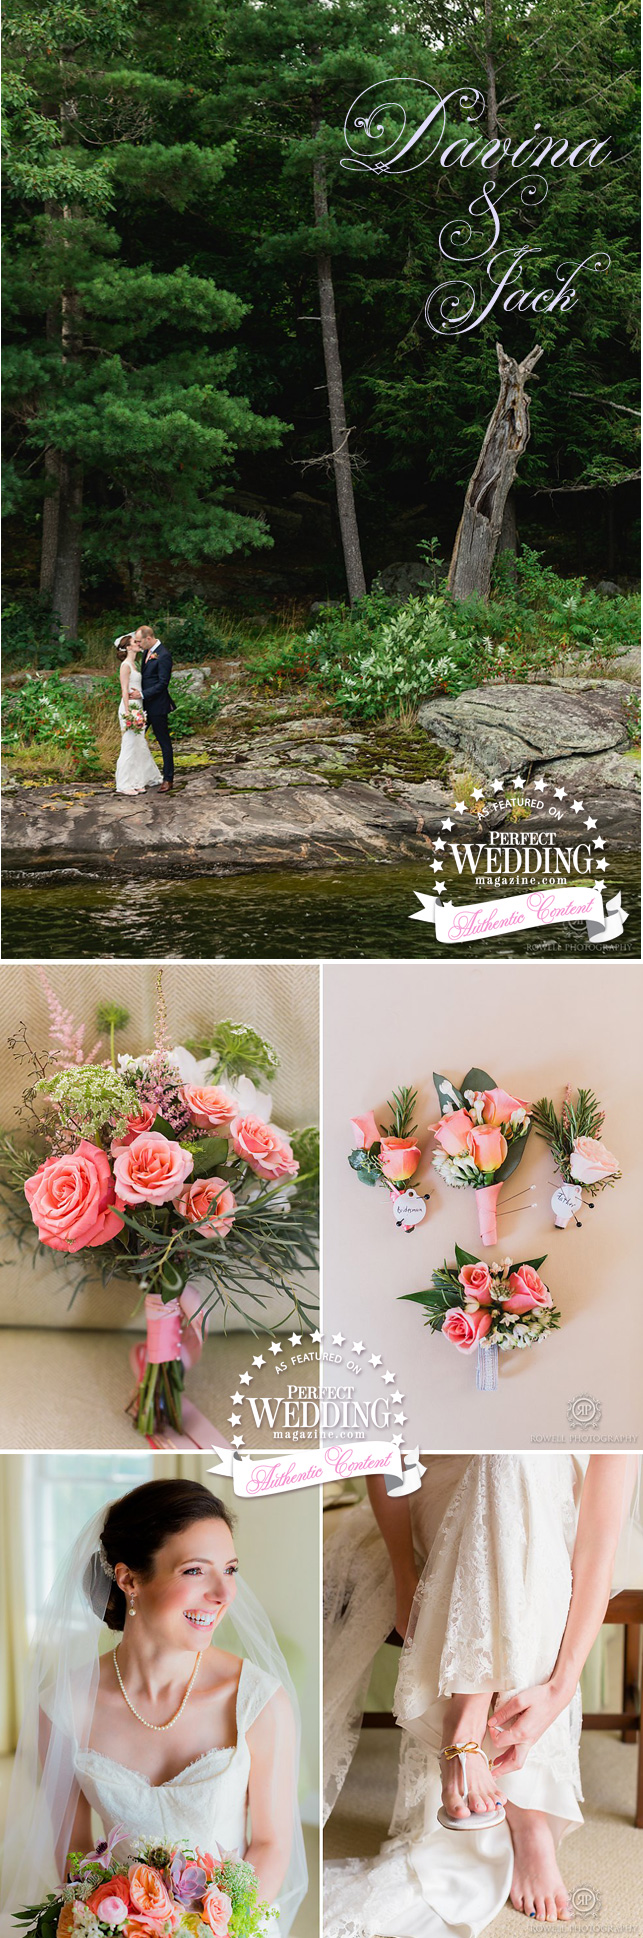 SUMMER WEDDING MUSKOKA,Canadian Summer Weddings, Summer weddings, Muskoka Weddings, Rowell Photo, Cottage Wedding, Wedding Decor, Bridal Flowers, Perfect Wedding Magazine, Perfect Wedding Blog